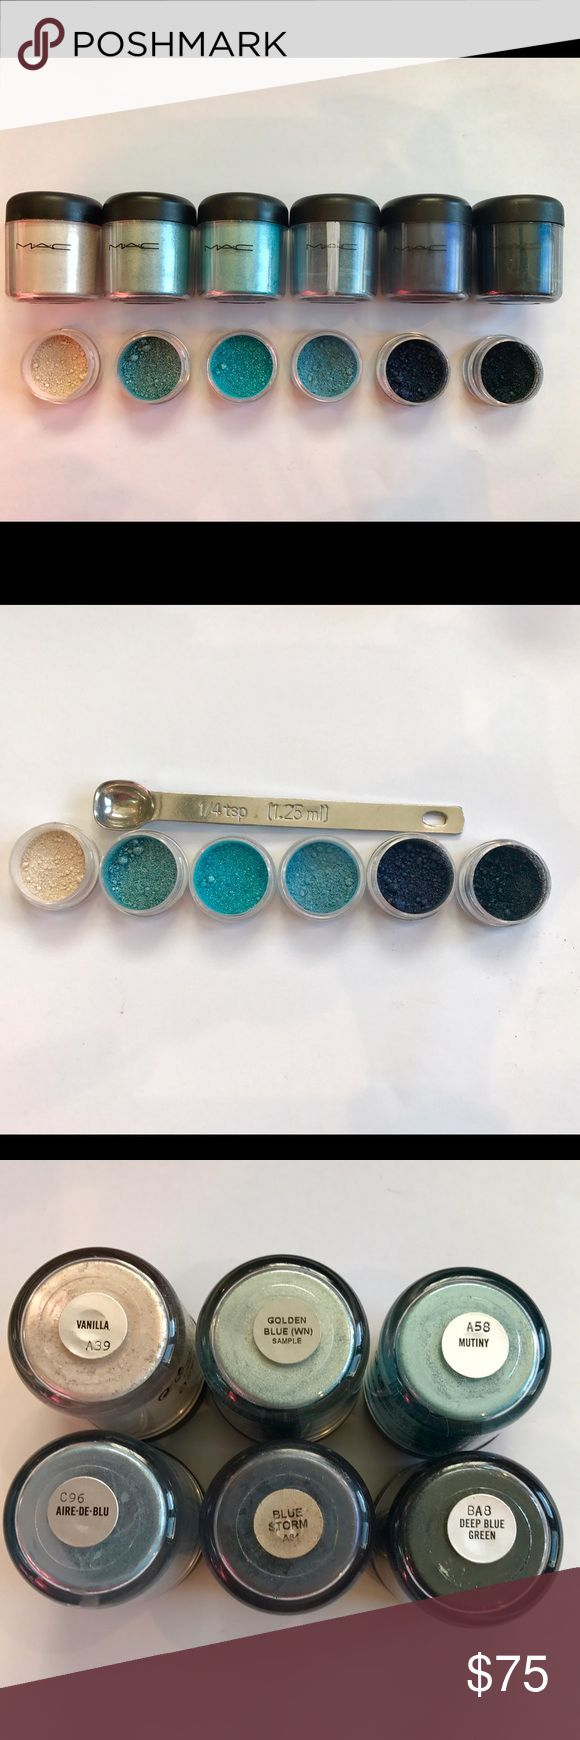 Super Rare MAC Pigment Sample Set (1/4 teaspoon) This MAC Pigment sample set includes 1/4 teaspoon of each of the following pigments: Vanilla, Golden Blue, Mutiny, Aire-De-Blu, Blue Storm, and Deep Blue Green!This is a perfect way to try out Authentic MAC Pigments without spending a fortune on them. These Pigments are perfect for any occasion! Get them while they last! SHIPS THE NEXT DAY! Pigments come in 3g BPA Free jars! MAC Cosmetics Makeup Eyeshadow